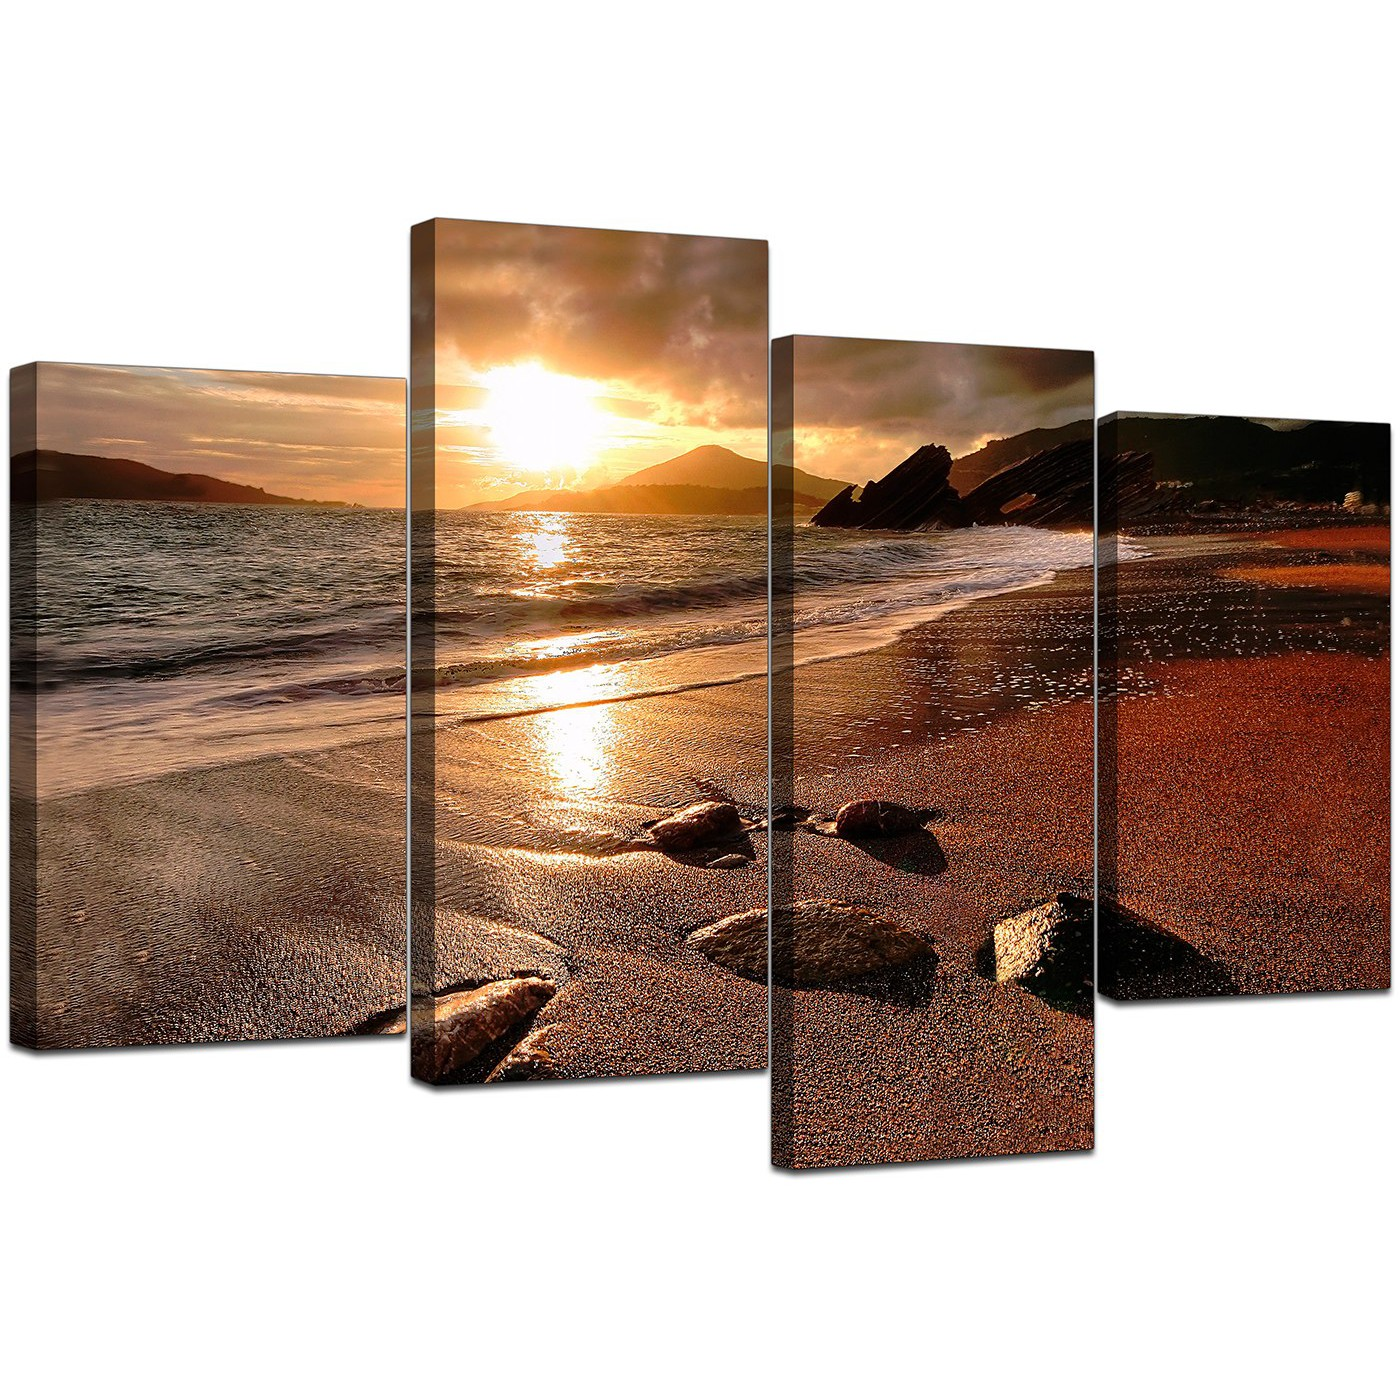 Canvas Art of Beach Sunset for your Living Room